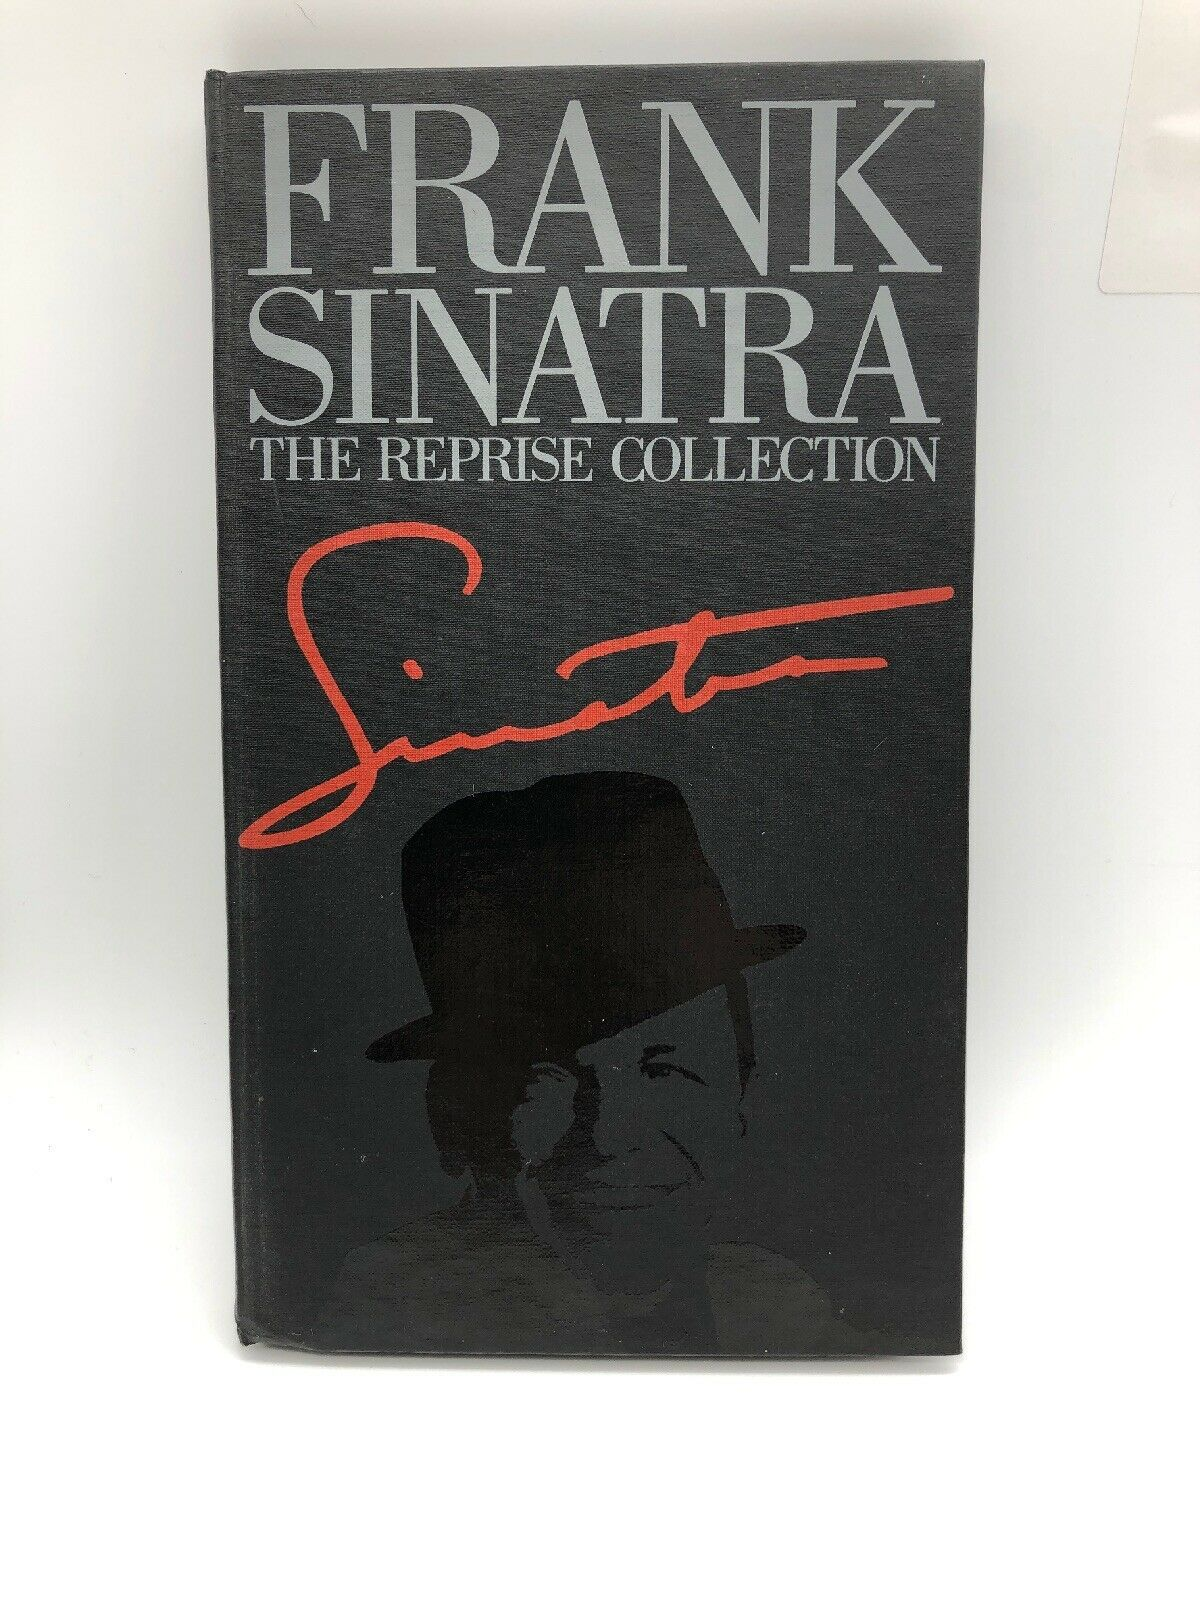 The Reprise Collection by Frank Sinatra (1990) Pre-Owned good cond. FS!